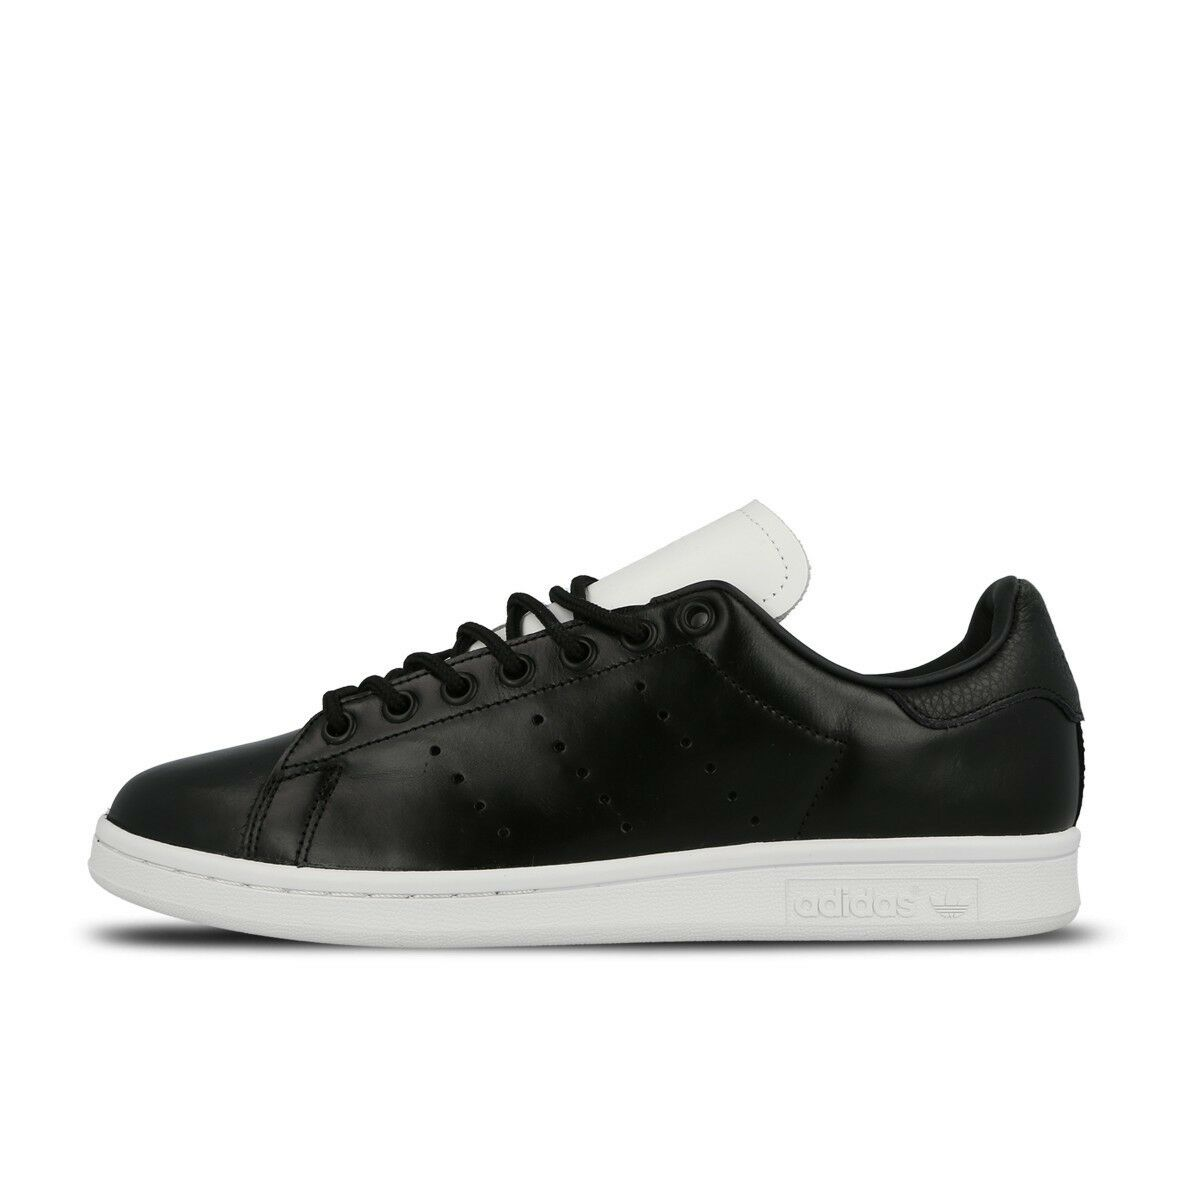 Adidas Originals Stan Smith Tumbled Tuxedo Mens Casual Leather YE shoes S8001 QS